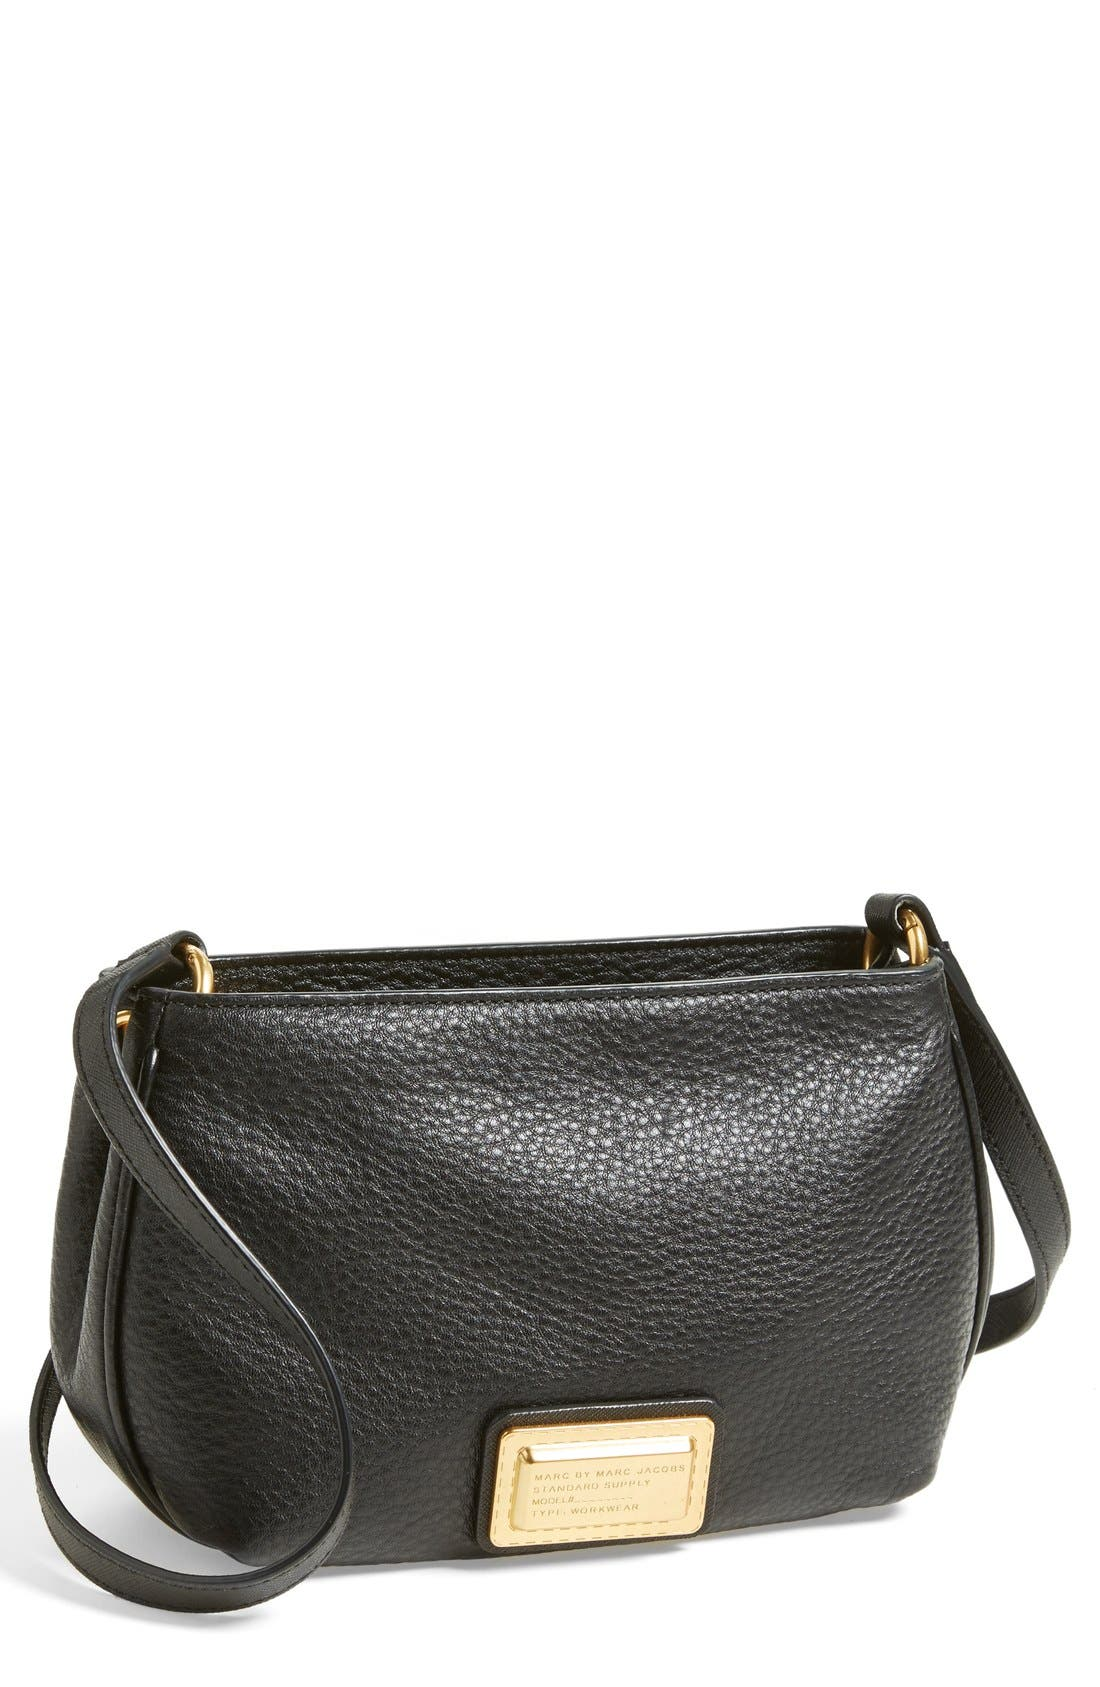 MARC JACOBS,                             MARC BY MARC JACOBS 'Percy' Crossbody Bag,                             Main thumbnail 1, color,                             001